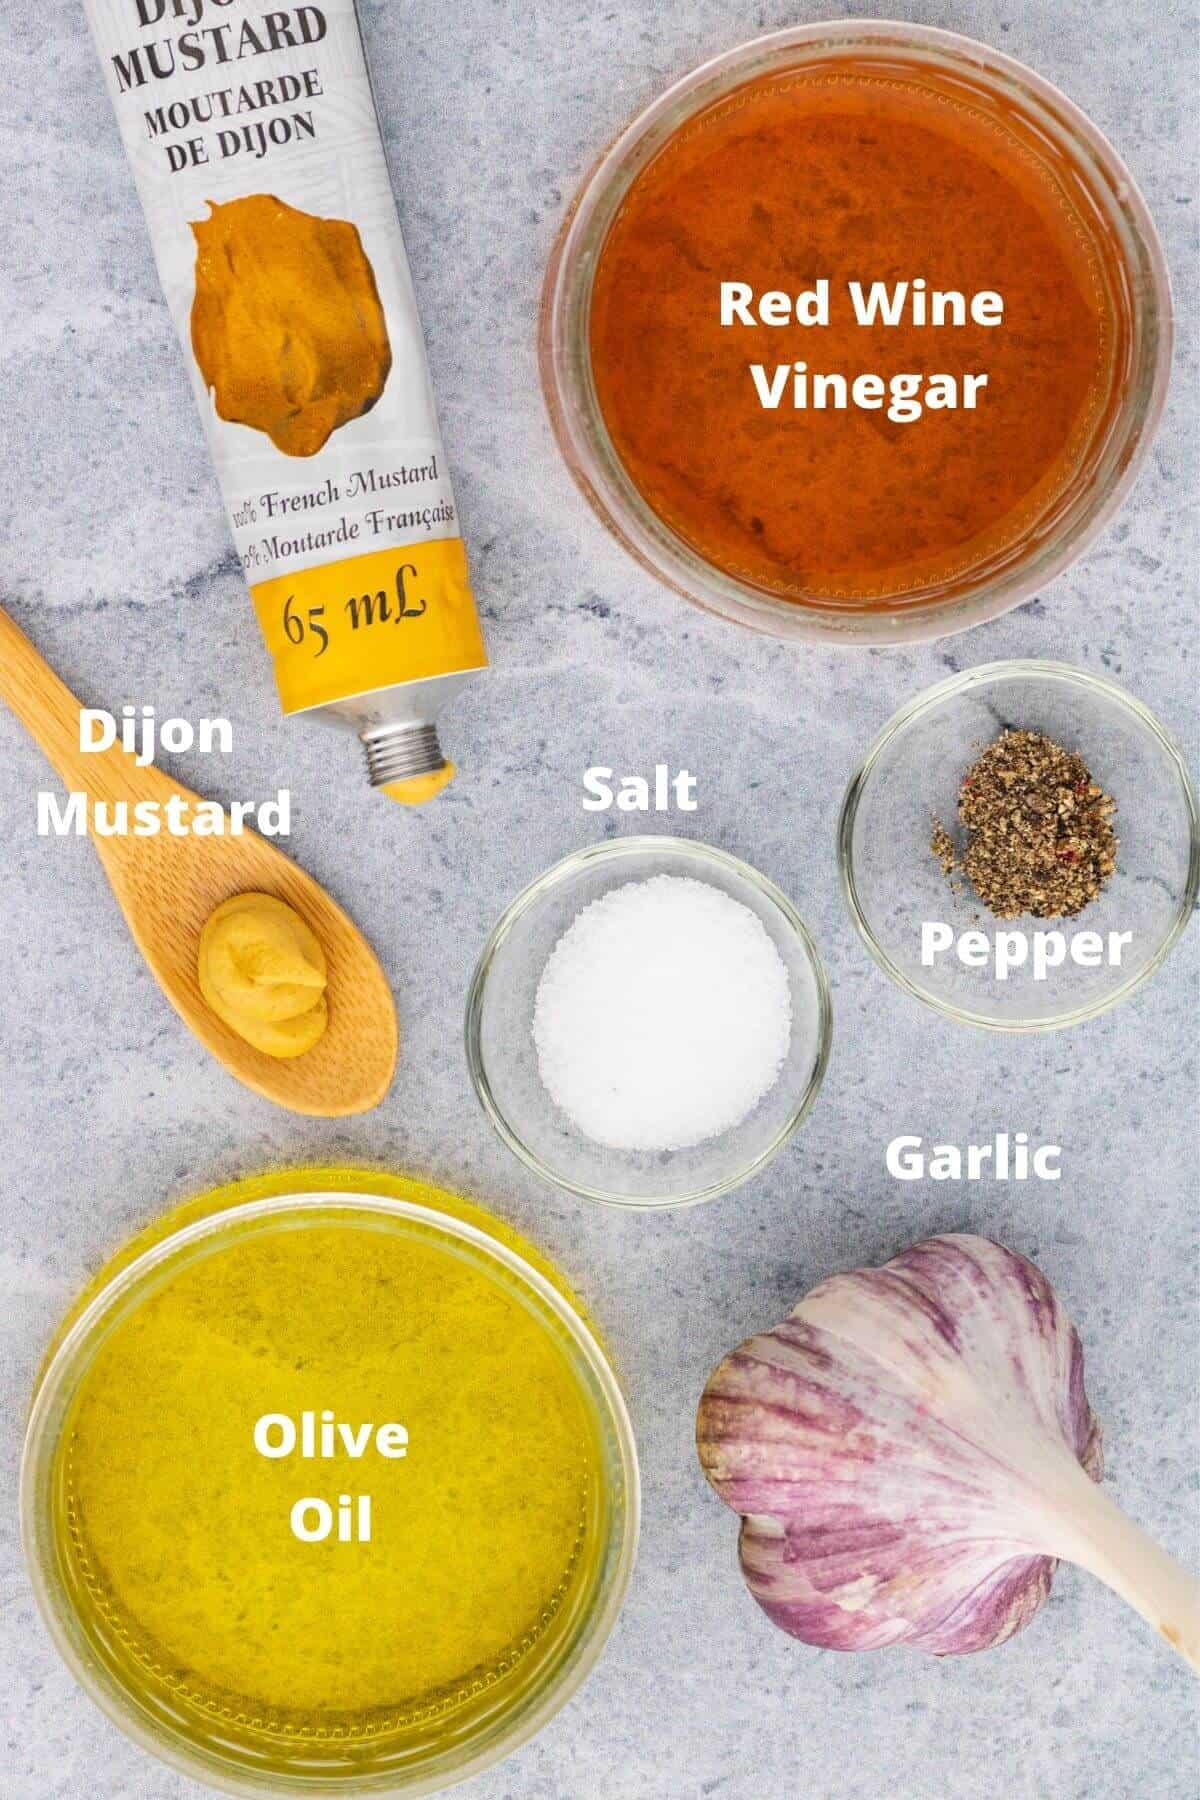 Labelled ingredients used in making Red Wine Vinaigrette.